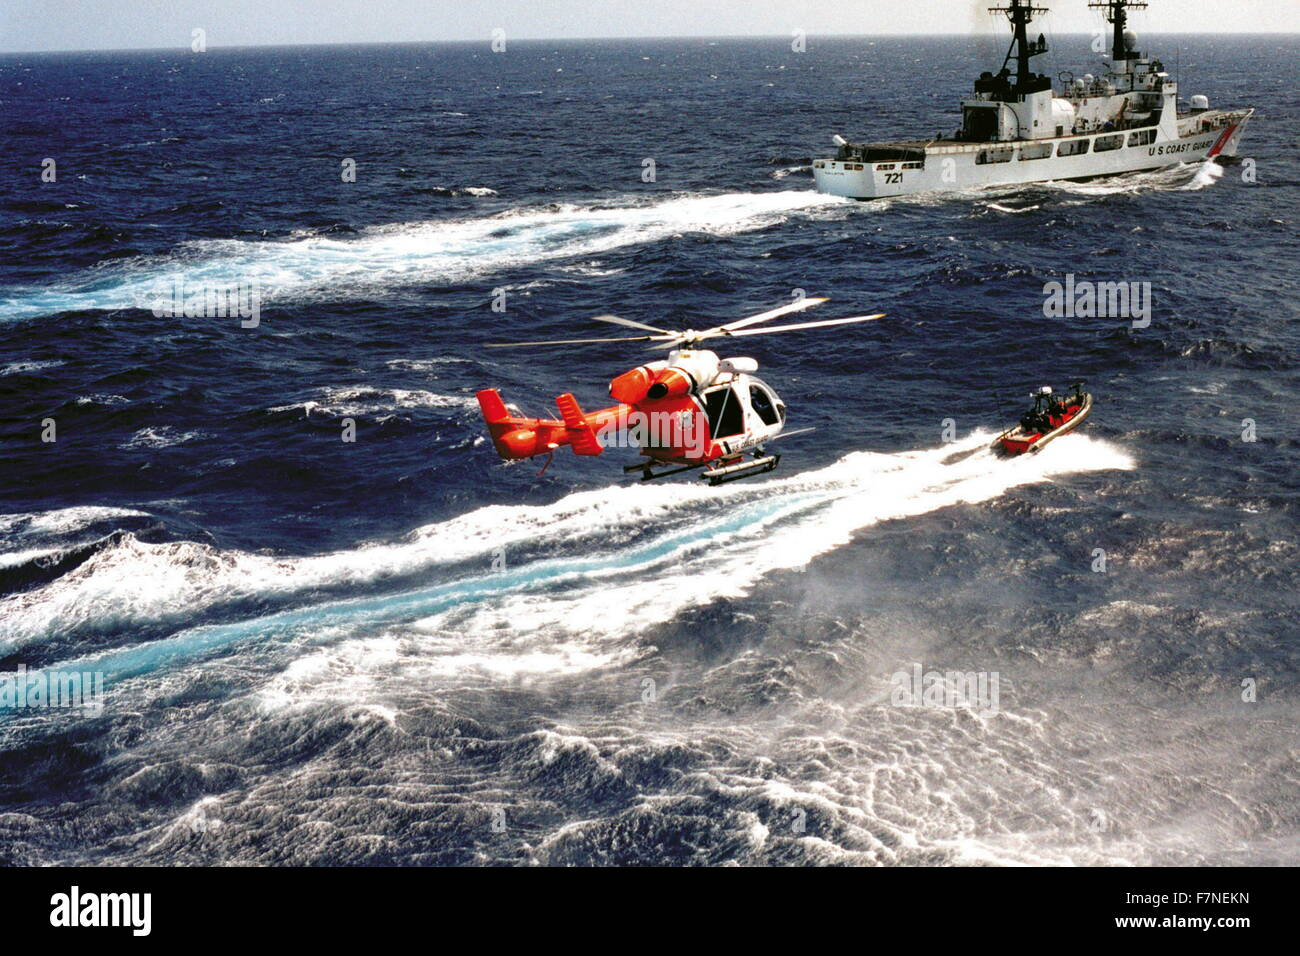 US Coastguard patrol boat with dinghy and helicopter 2012 - Stock Image